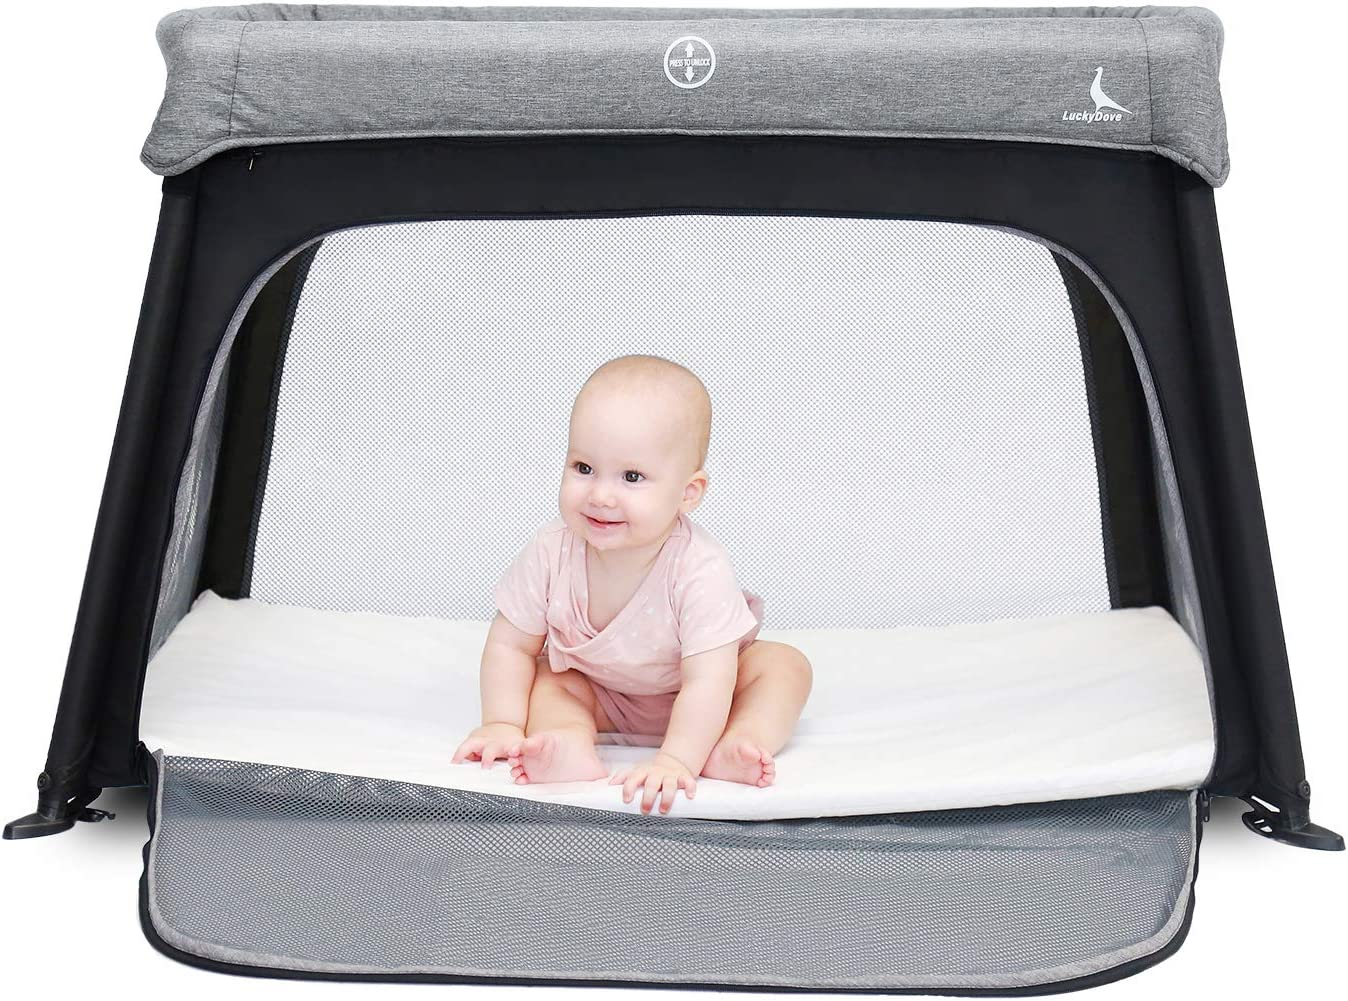 LuckyDove Portable Travel Crib&Pack n Play-Lightweight,Simple Assembly&Easily Collapsible,Gray